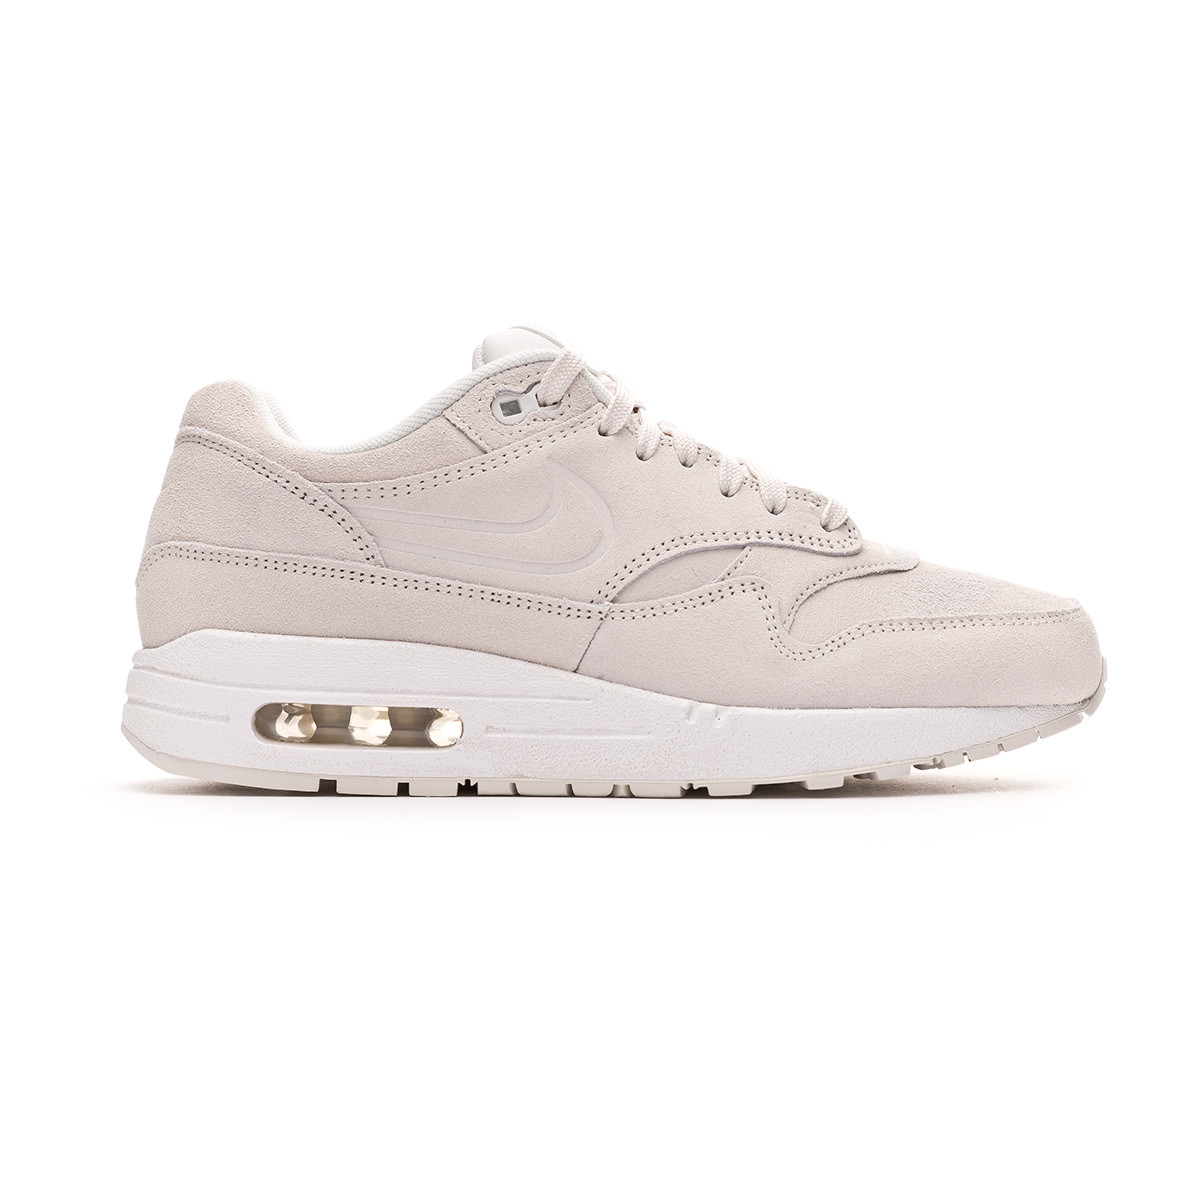 uk availability 0234a 668fa Trainers Nike Air Max 1 Premium Mujer Summit White - Tienda de fútbol  Fútbol Emotion